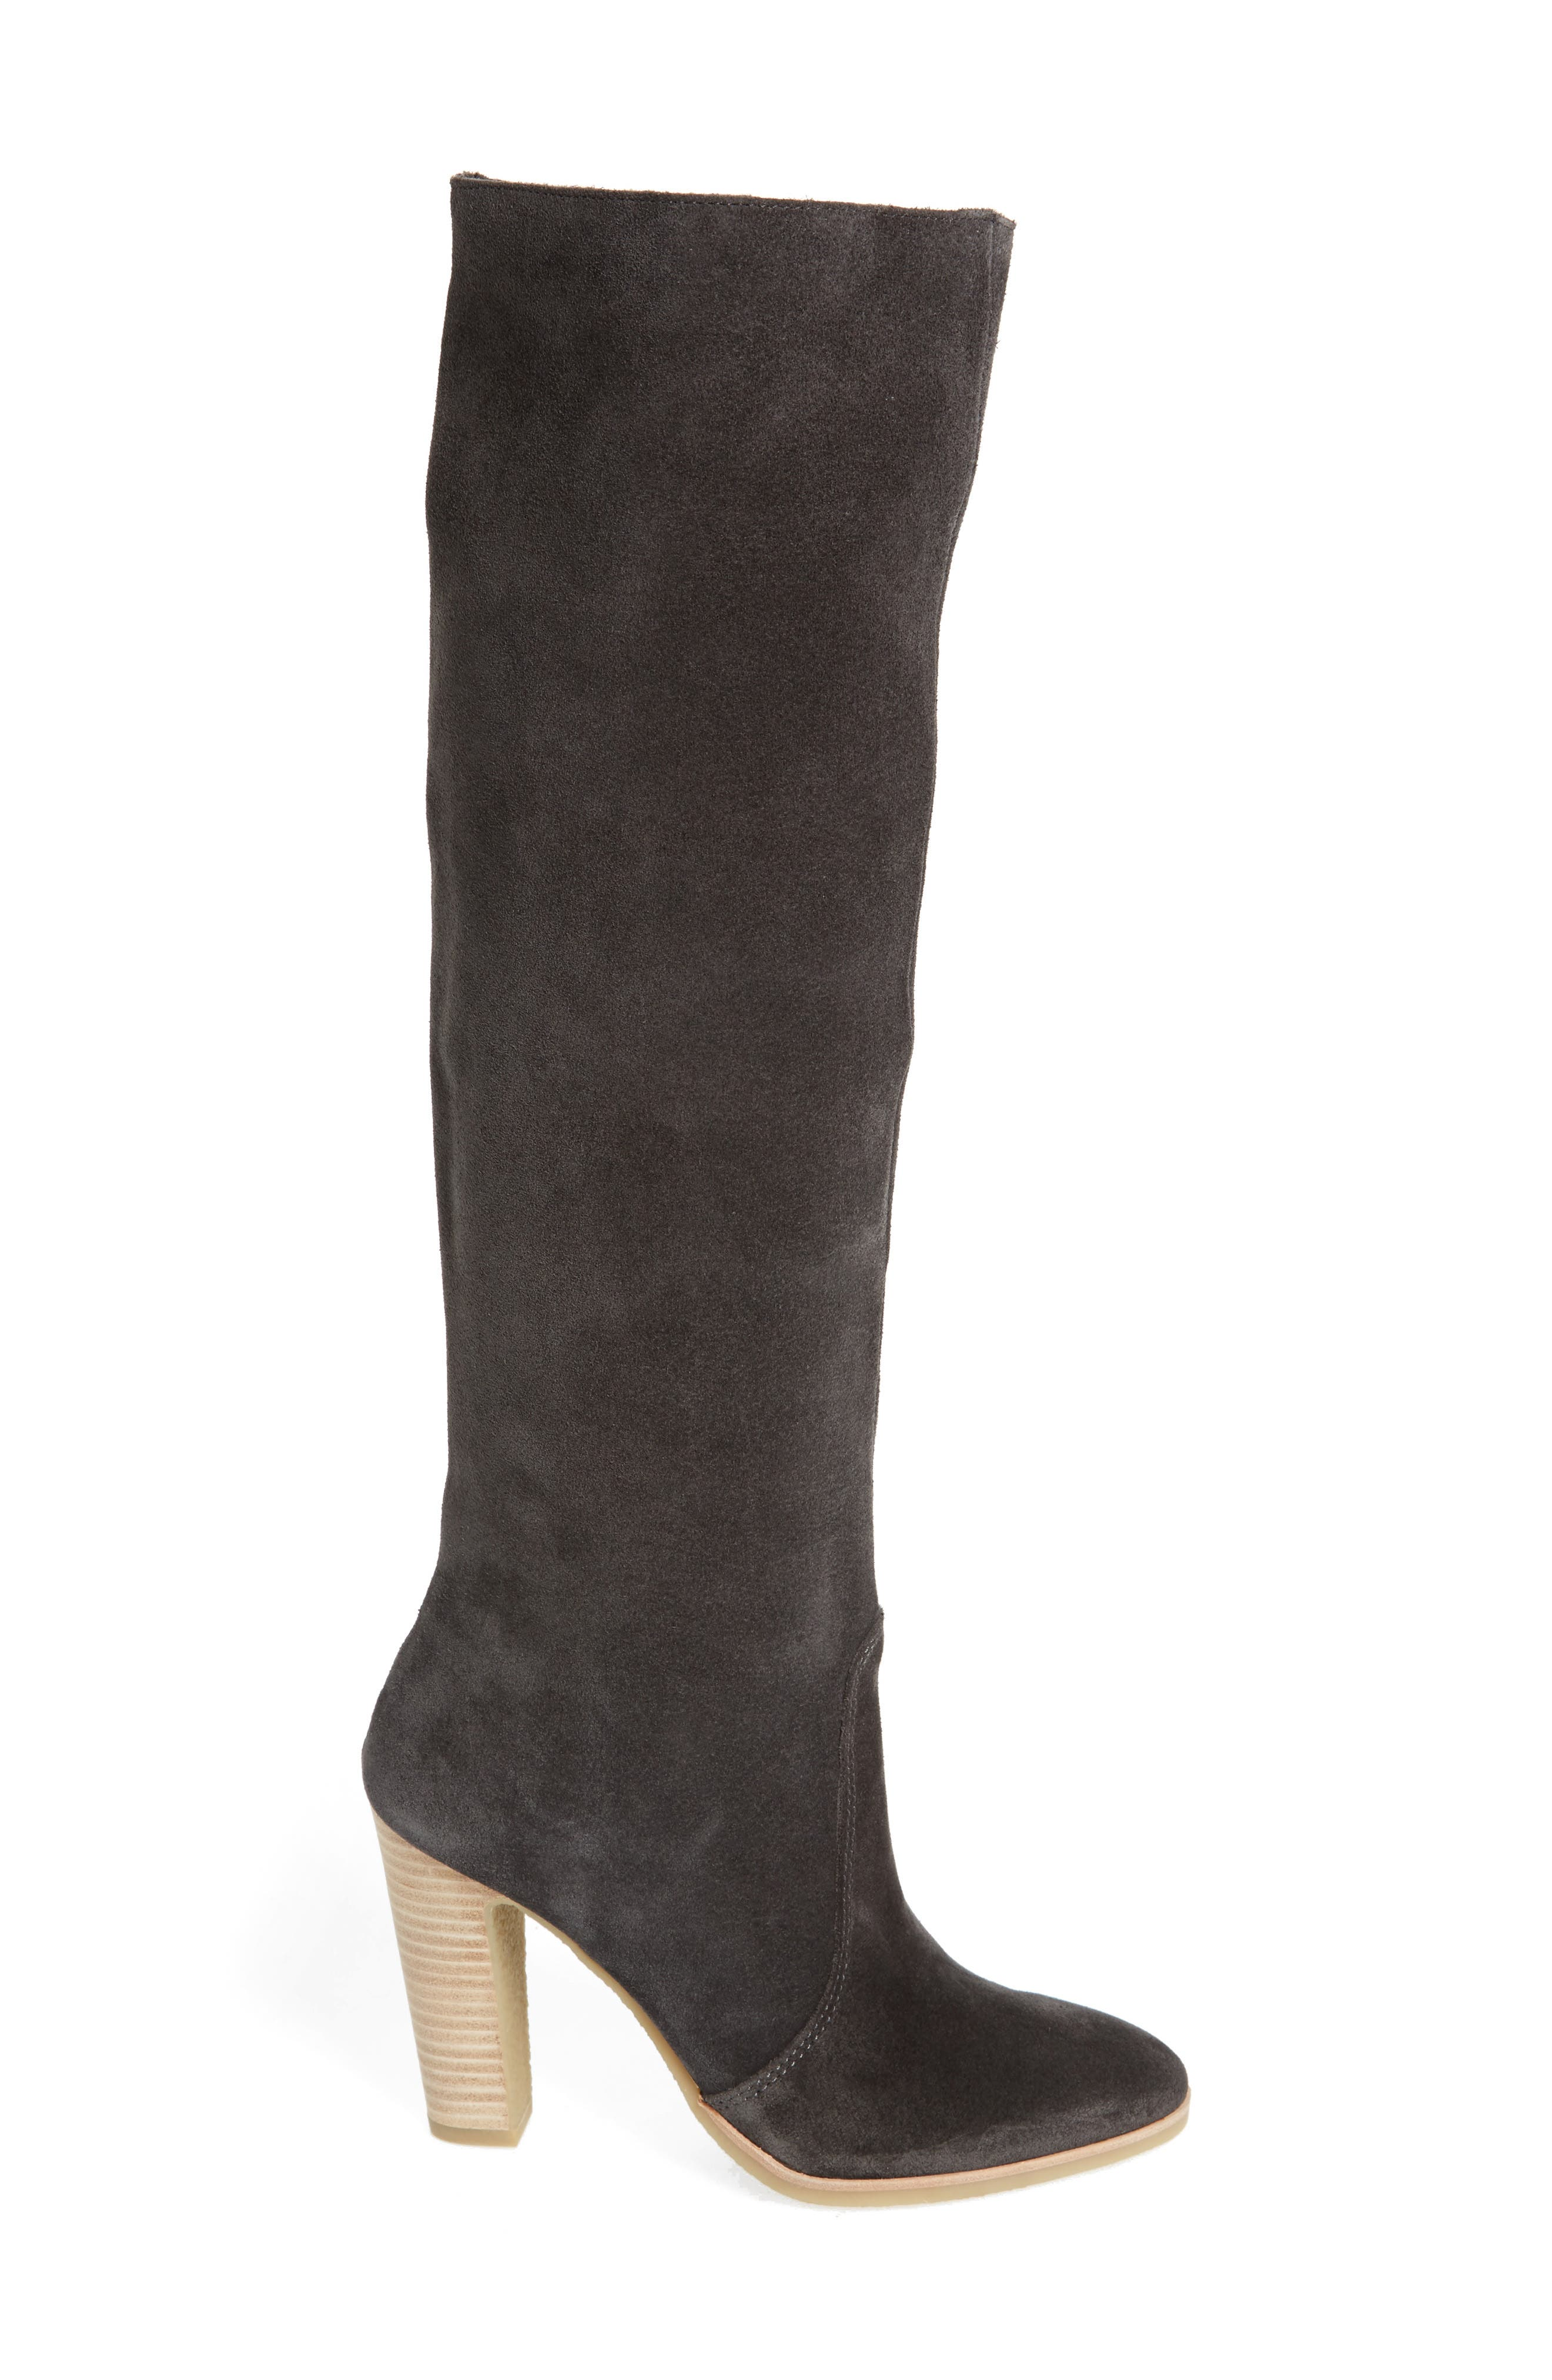 Celine Knee-High Boot,                             Alternate thumbnail 3, color,                             Anthracite Suede